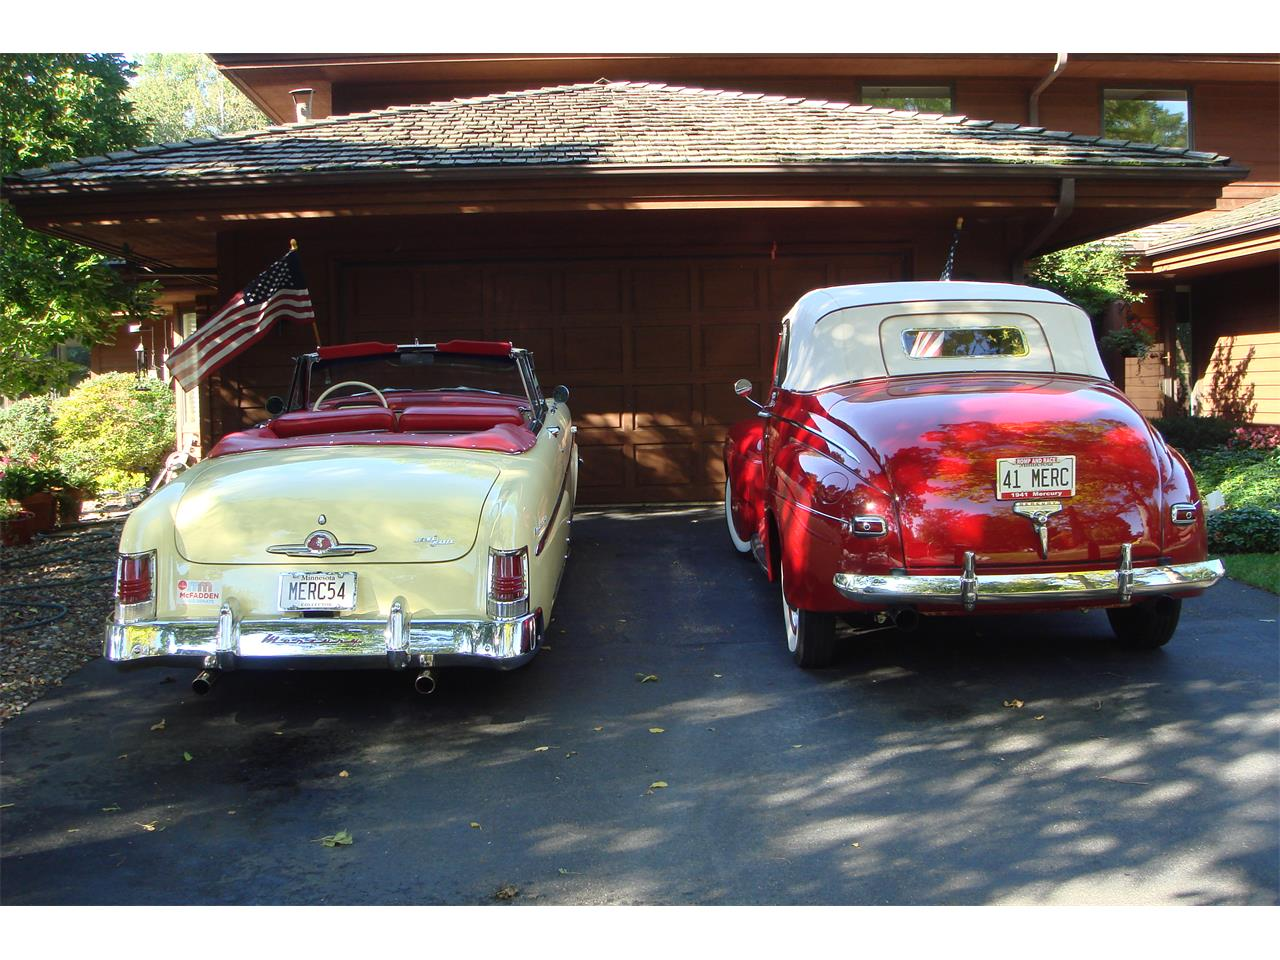 Large Picture of '54 Mercury Convertible located in Minnetonka Minnesota - $69,850.00 Offered by a Private Seller - LUX1